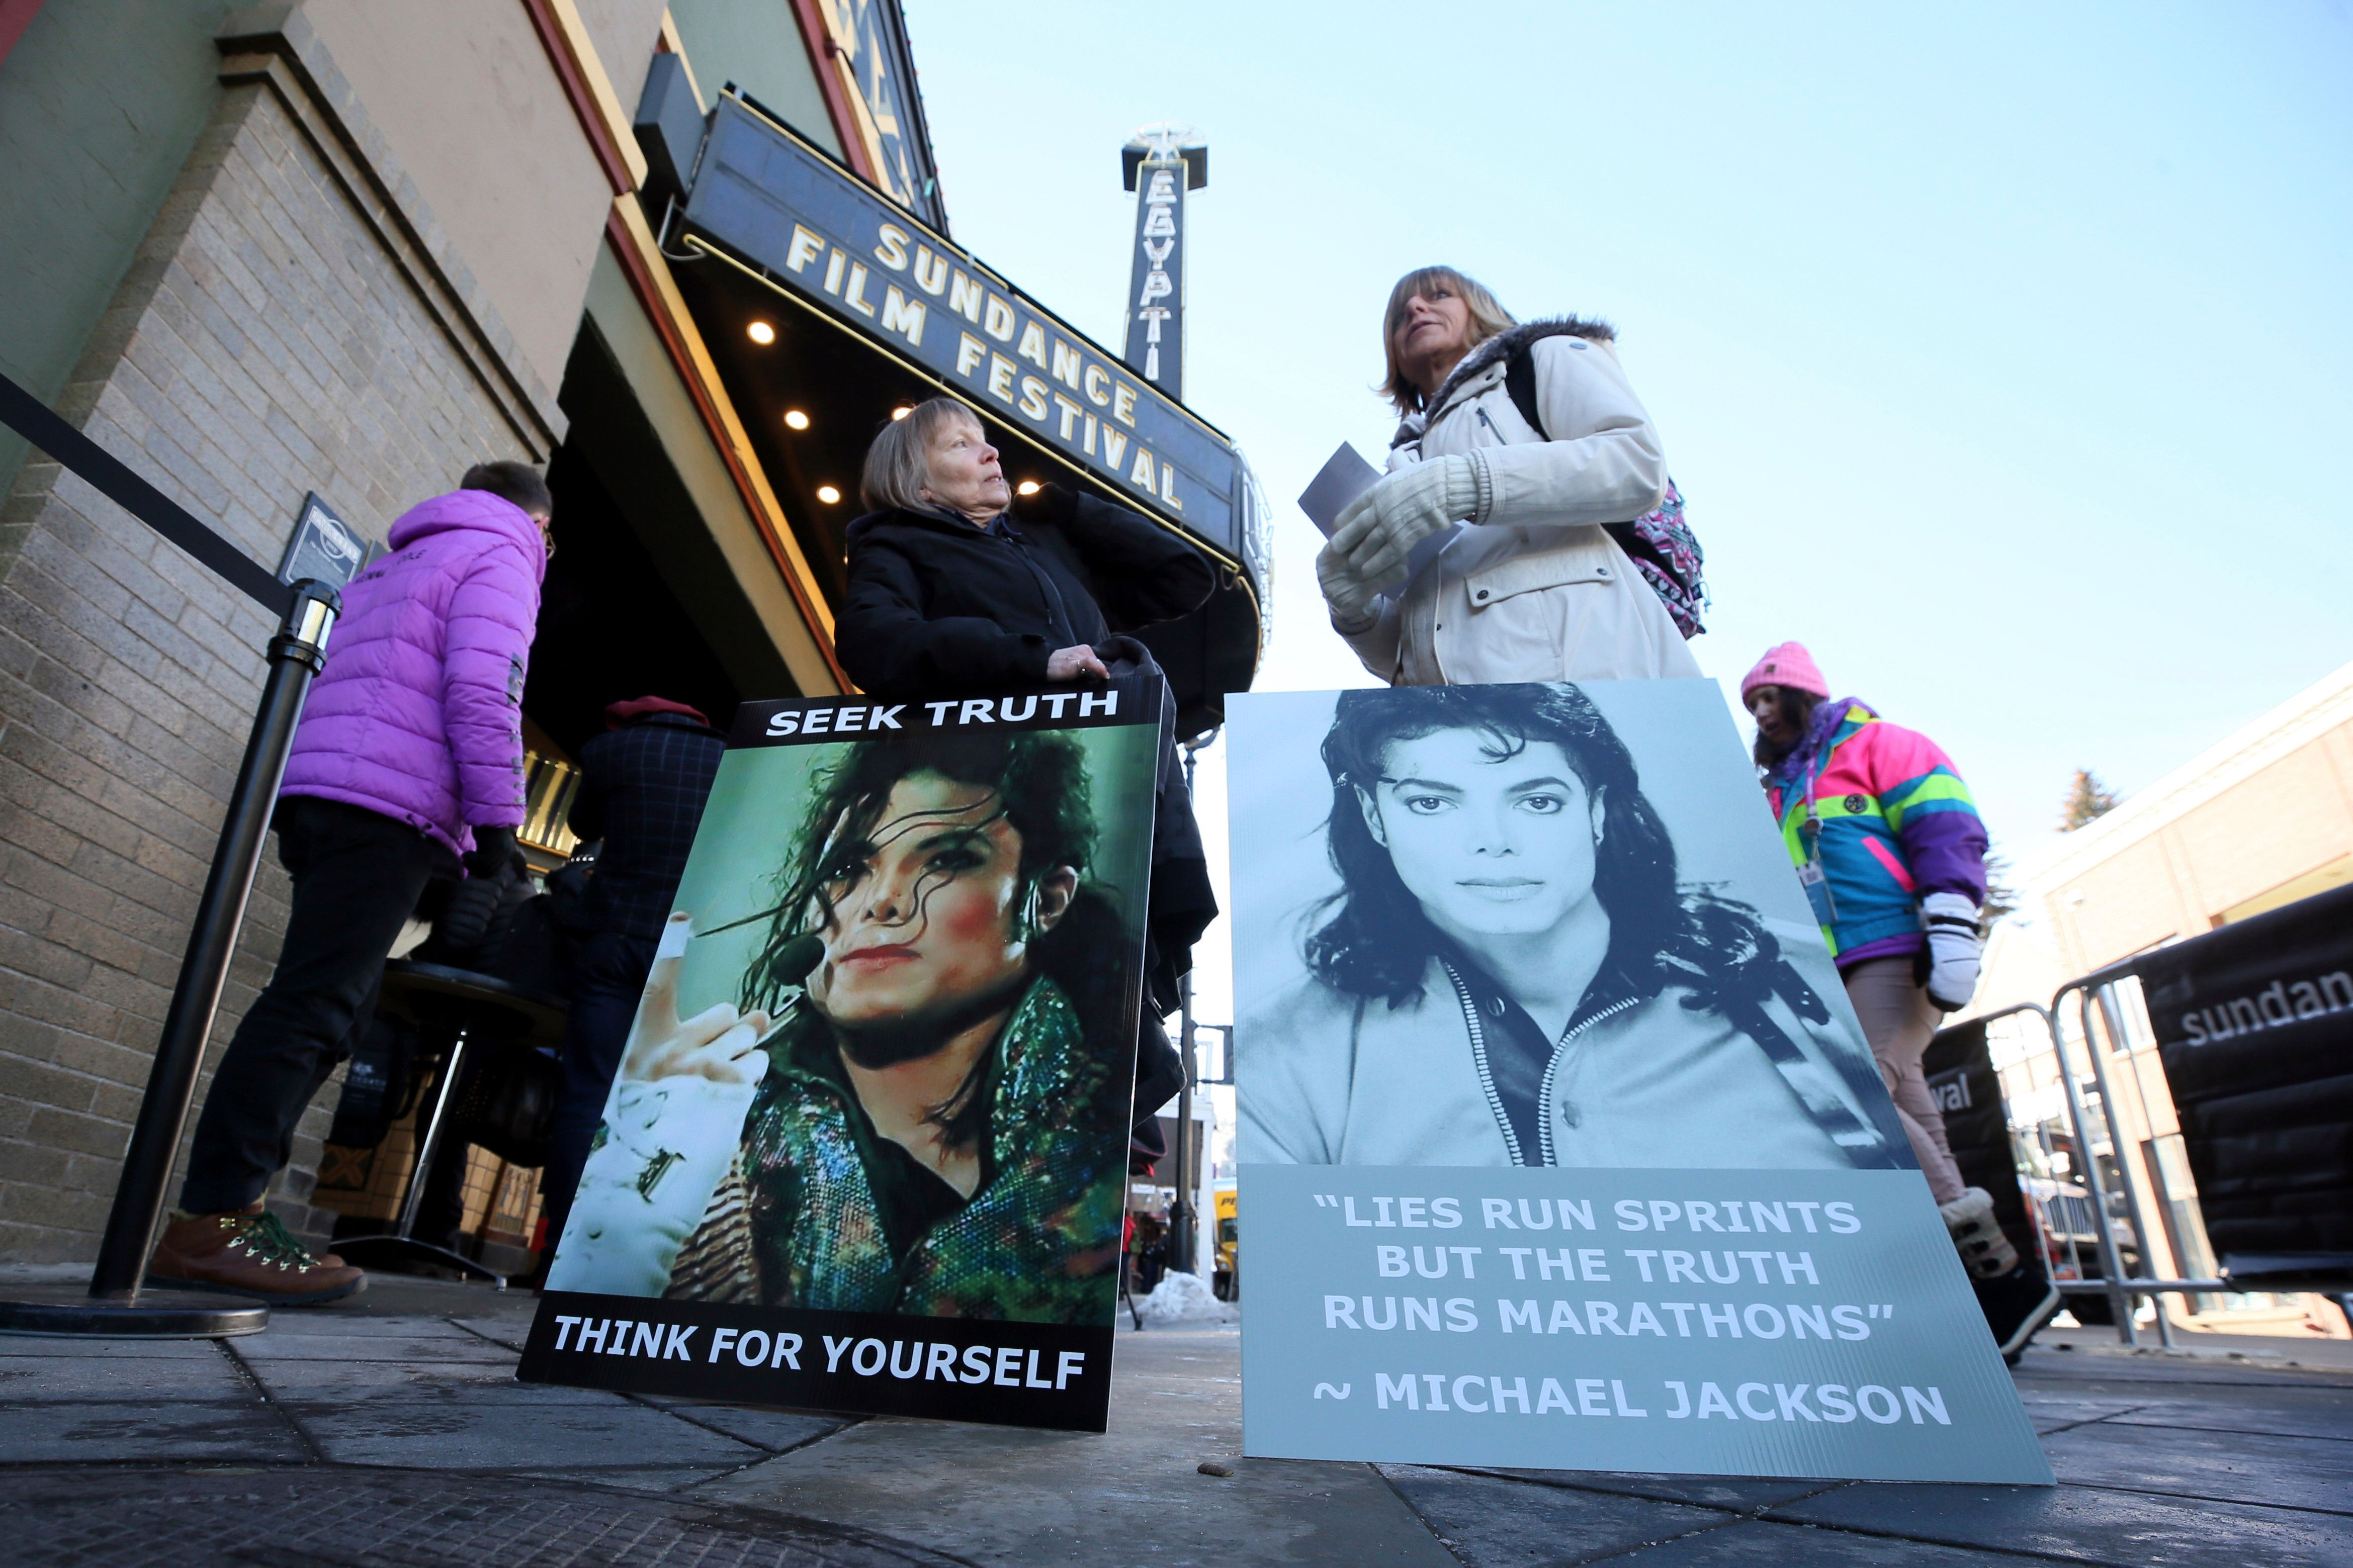 Michael Jackson Doc On Child Sex Abuse Charges Leaves Crowds